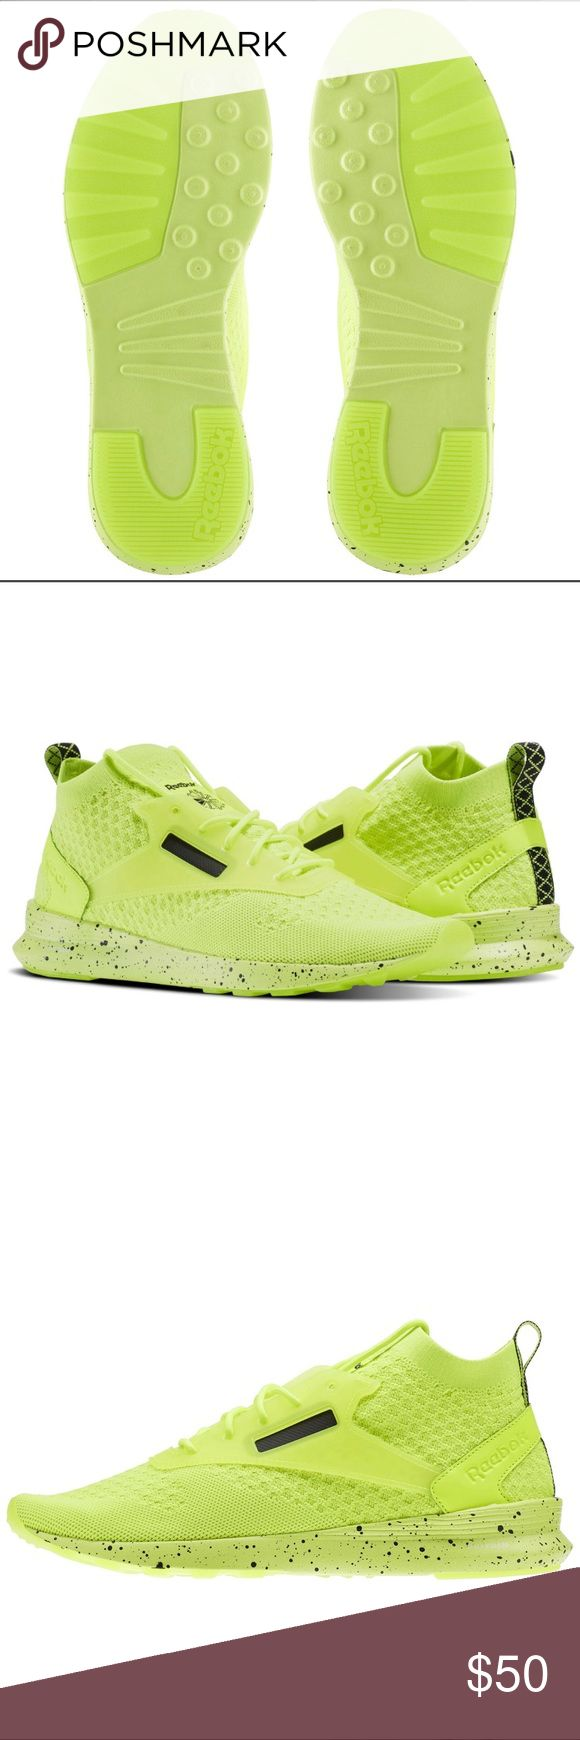 NIB Reebok zoku runner ultraknit IS Brand new Reebok zoku runner ultraknit.   One piece knit upper for a lightweight , sock-like fit Sock like construction  Runner outsole  True to size. Reebok Shoes Athletic Shoes